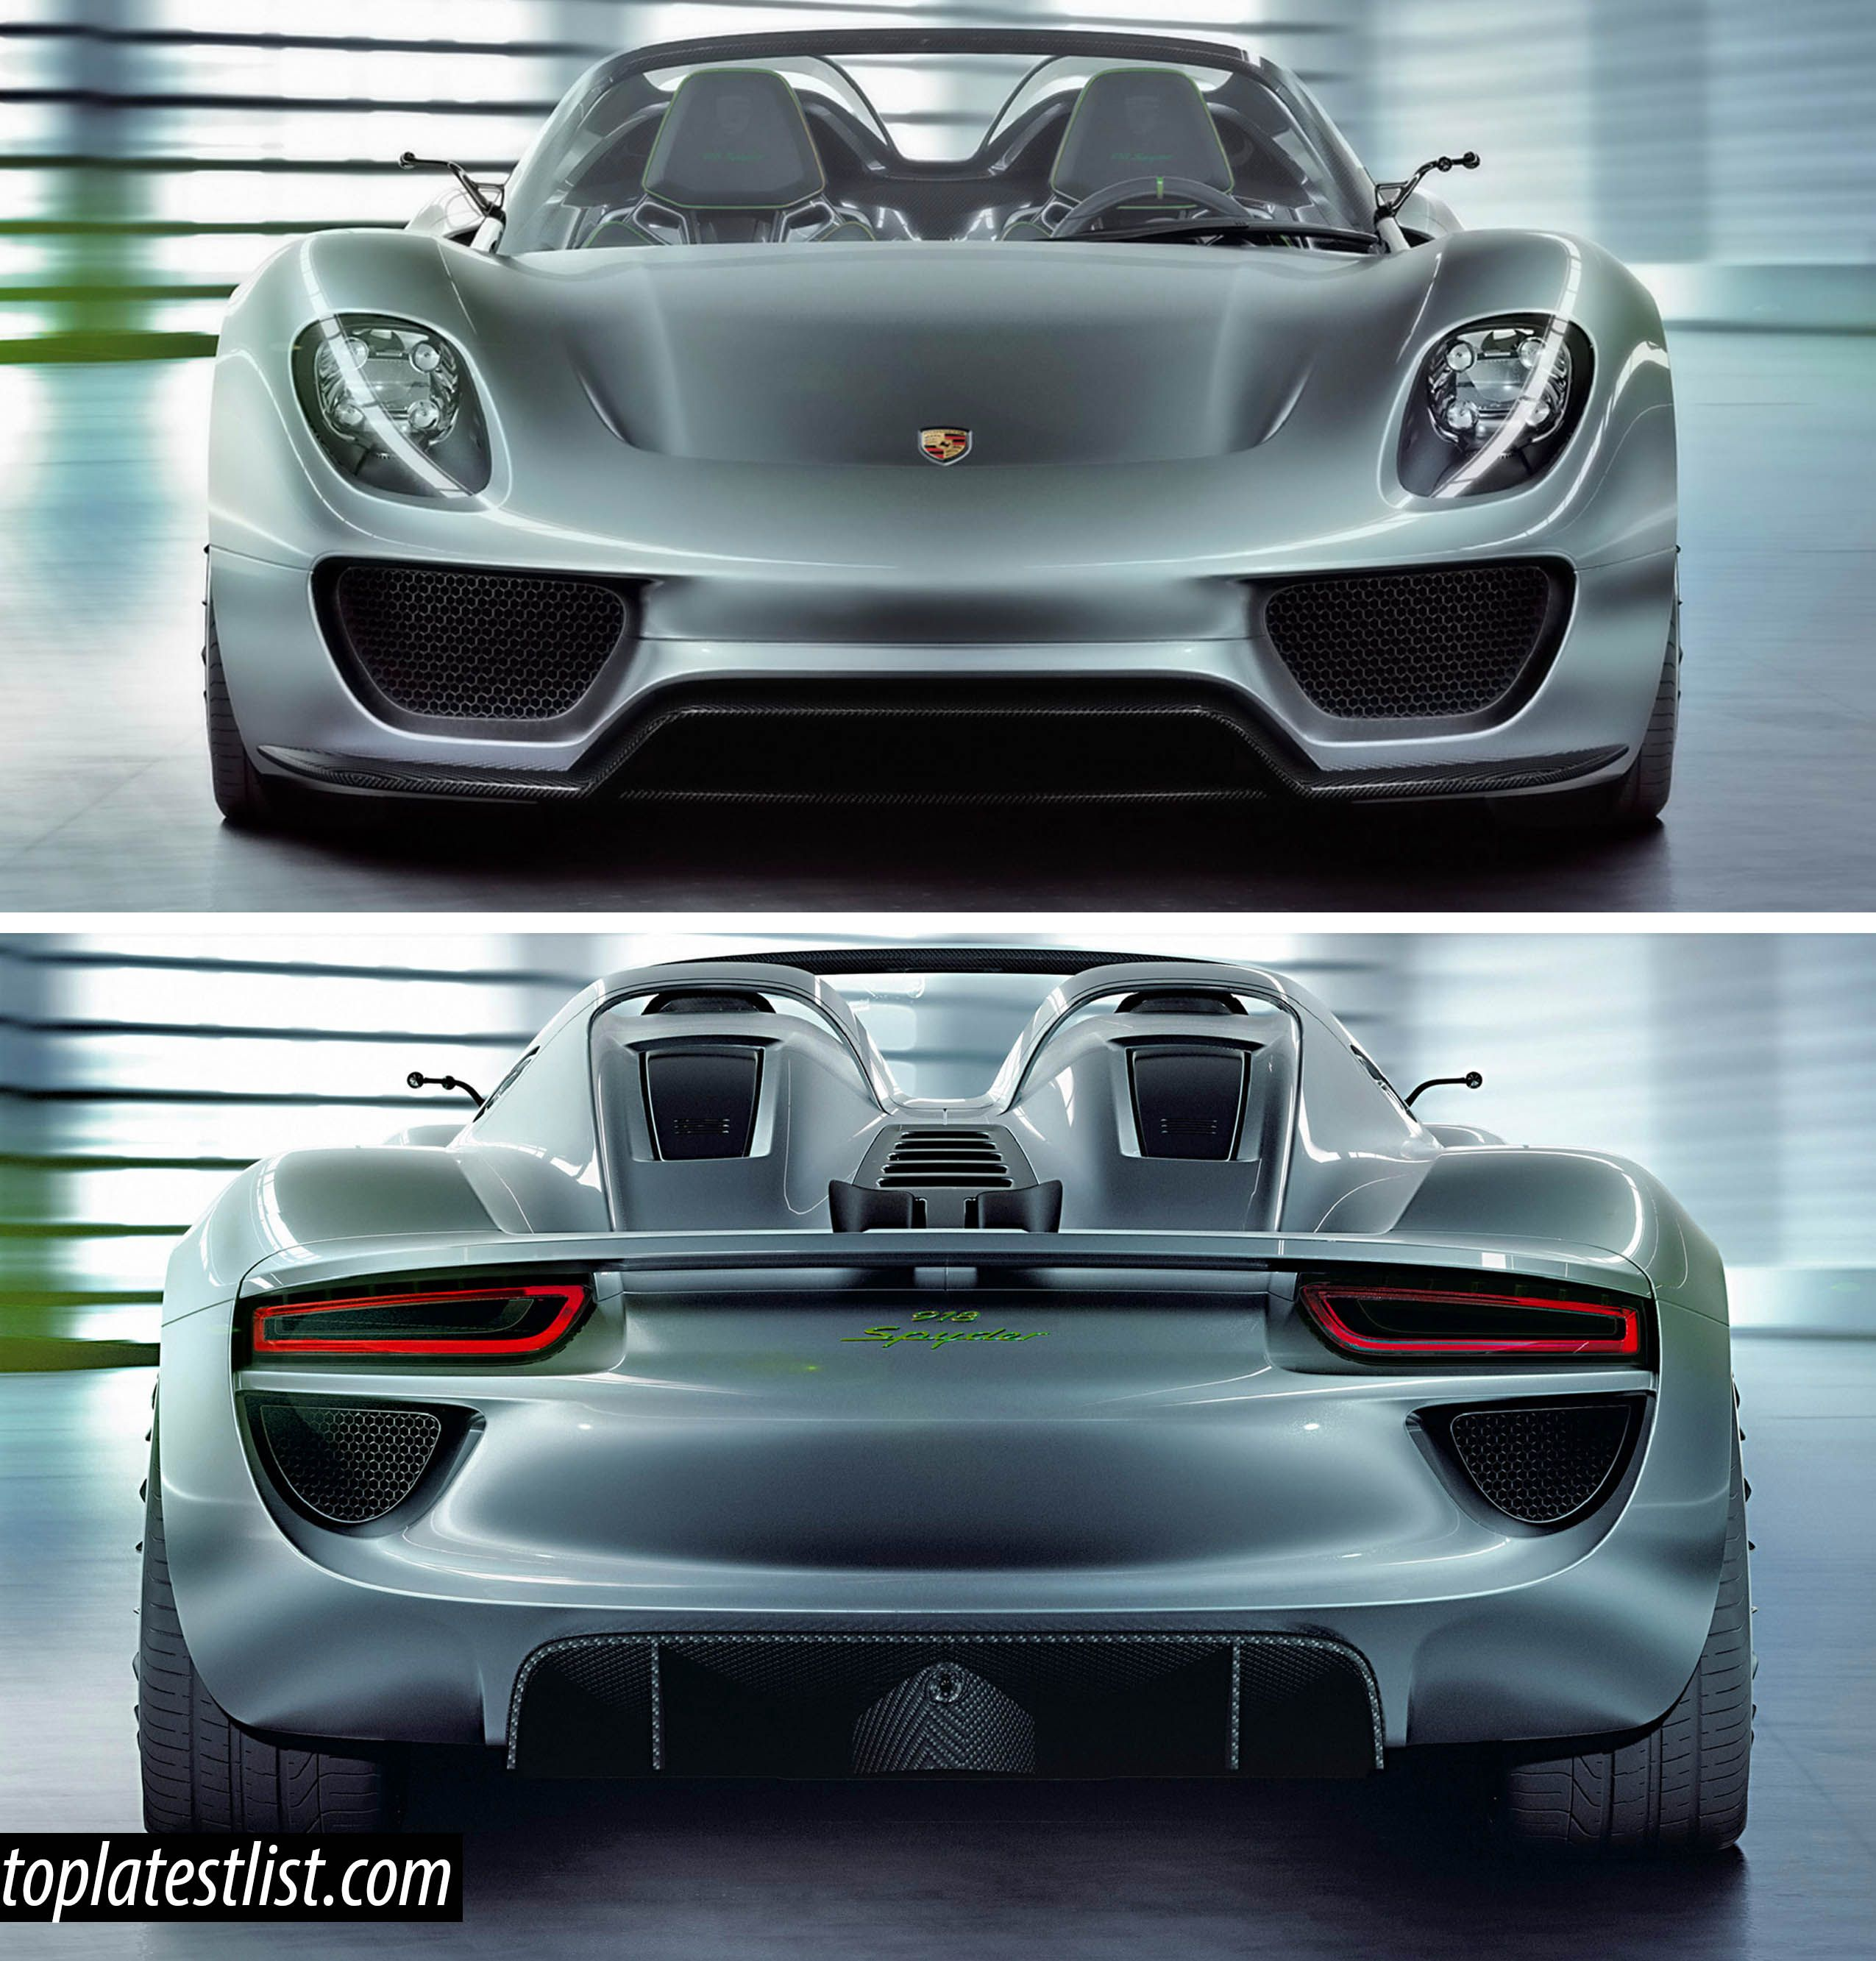 Most Expensive Porsche Car: Latest List Of Most Expensive Fastest Cars In The World